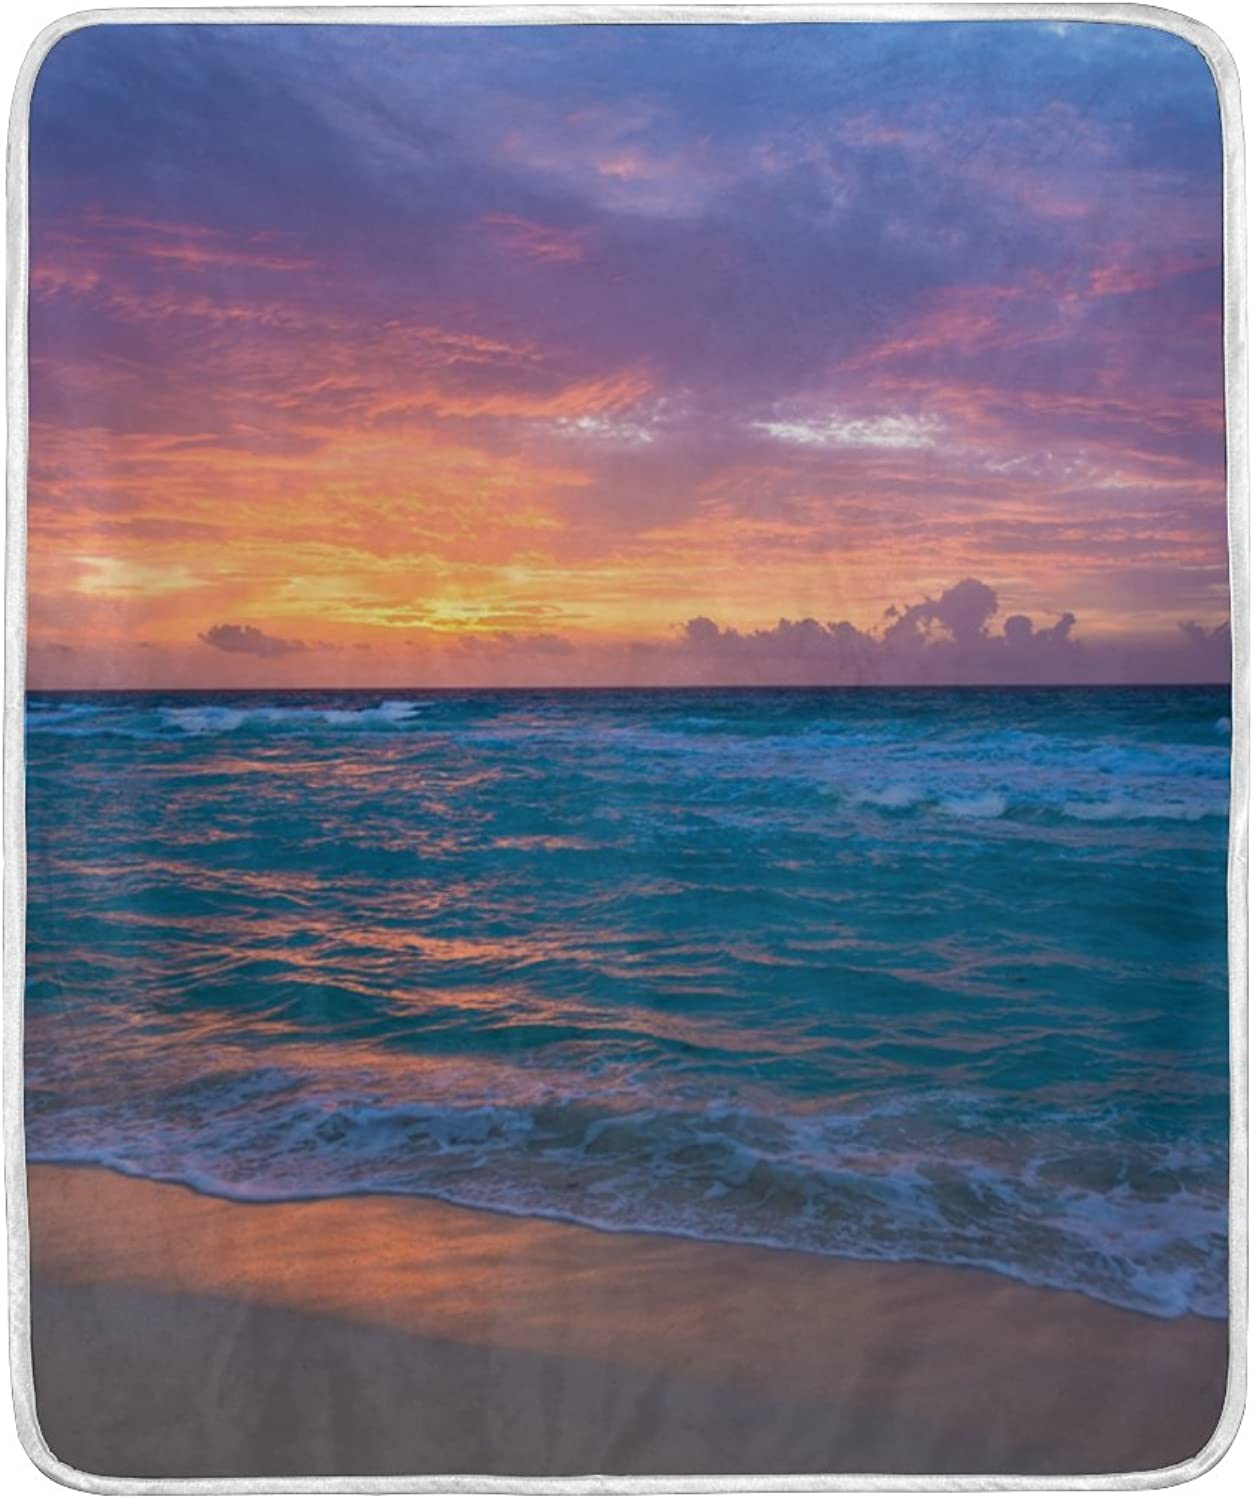 ALIREA Sea Sunrise Super Soft Warm Blanket Lightweight Throw Blankets for Bed Couch Sofa Travelling Camping 60 x 50 Inch for Kids Boys Girls